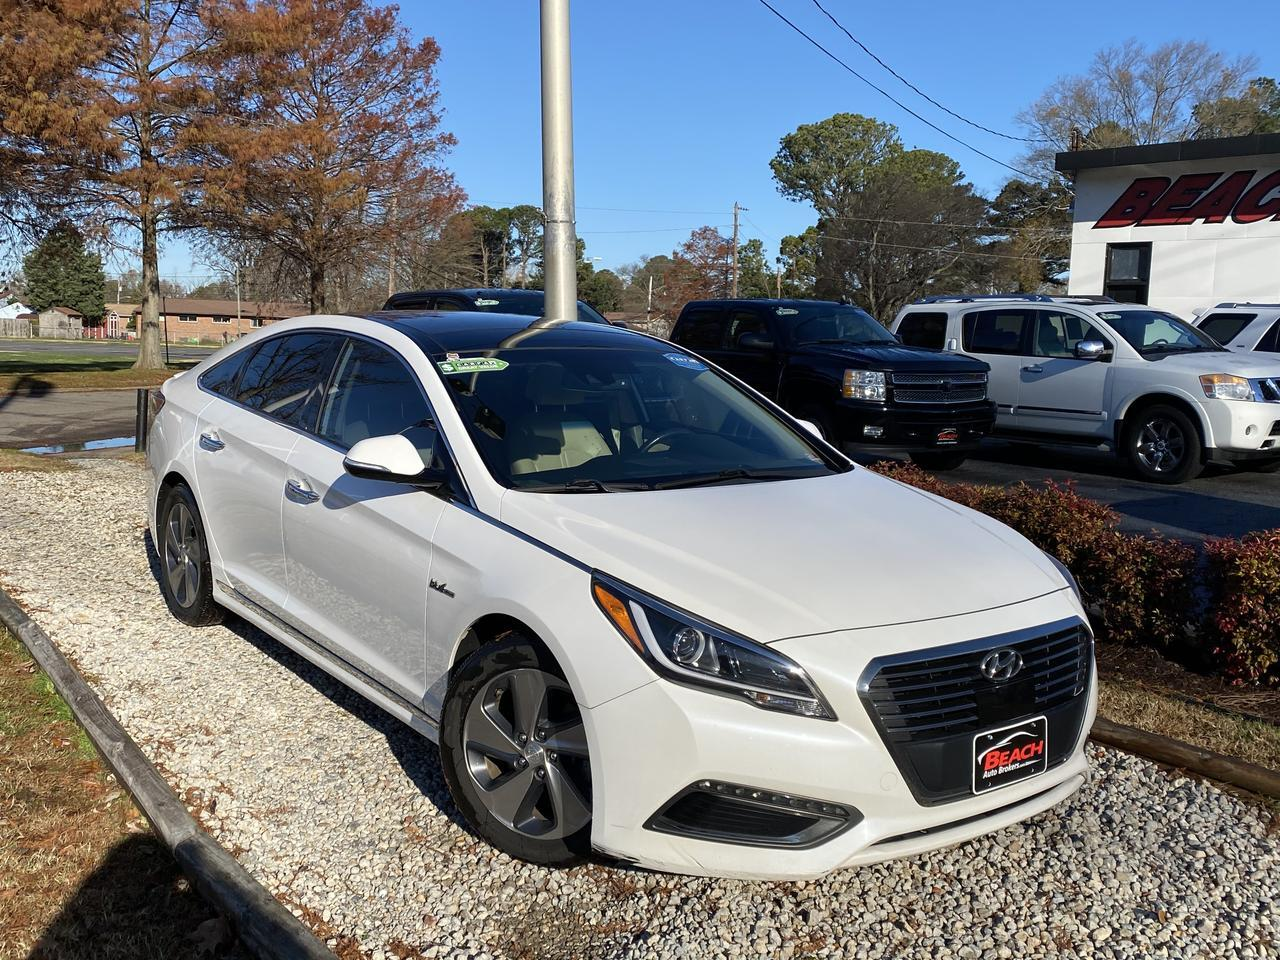 2017 HYUNDAI SONATA HYBRID LIMITED, WARRANTY, LEATHER, NAV, HEATED/COOLED SEATS, BLUETOOTH, CLEAN CARFAX, 1 OWNER! Norfolk VA